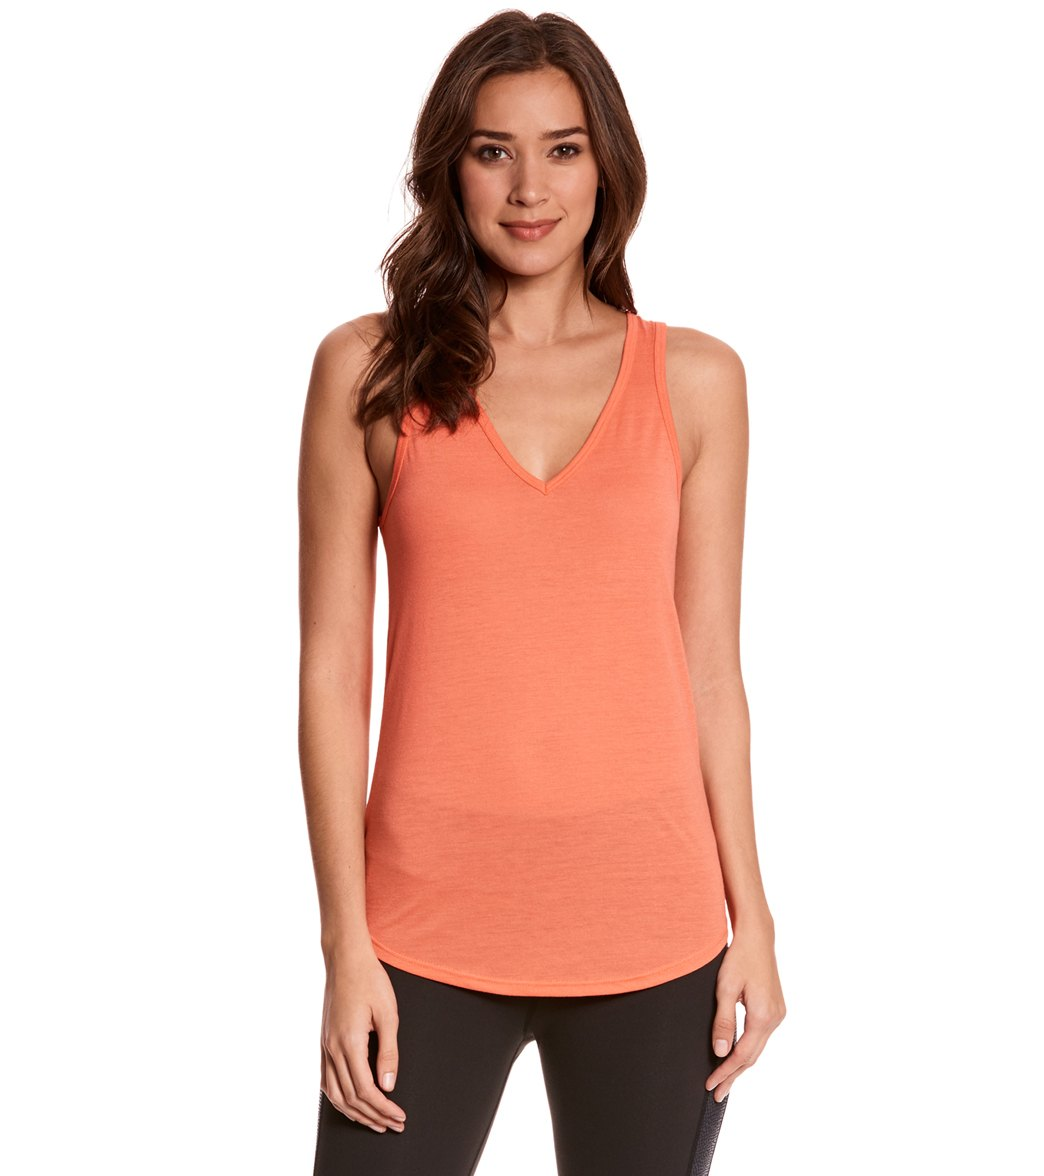 Bella + Canvas Women's Flowy V-Neck Workout Tank Top - Coral - X-Large Cotton